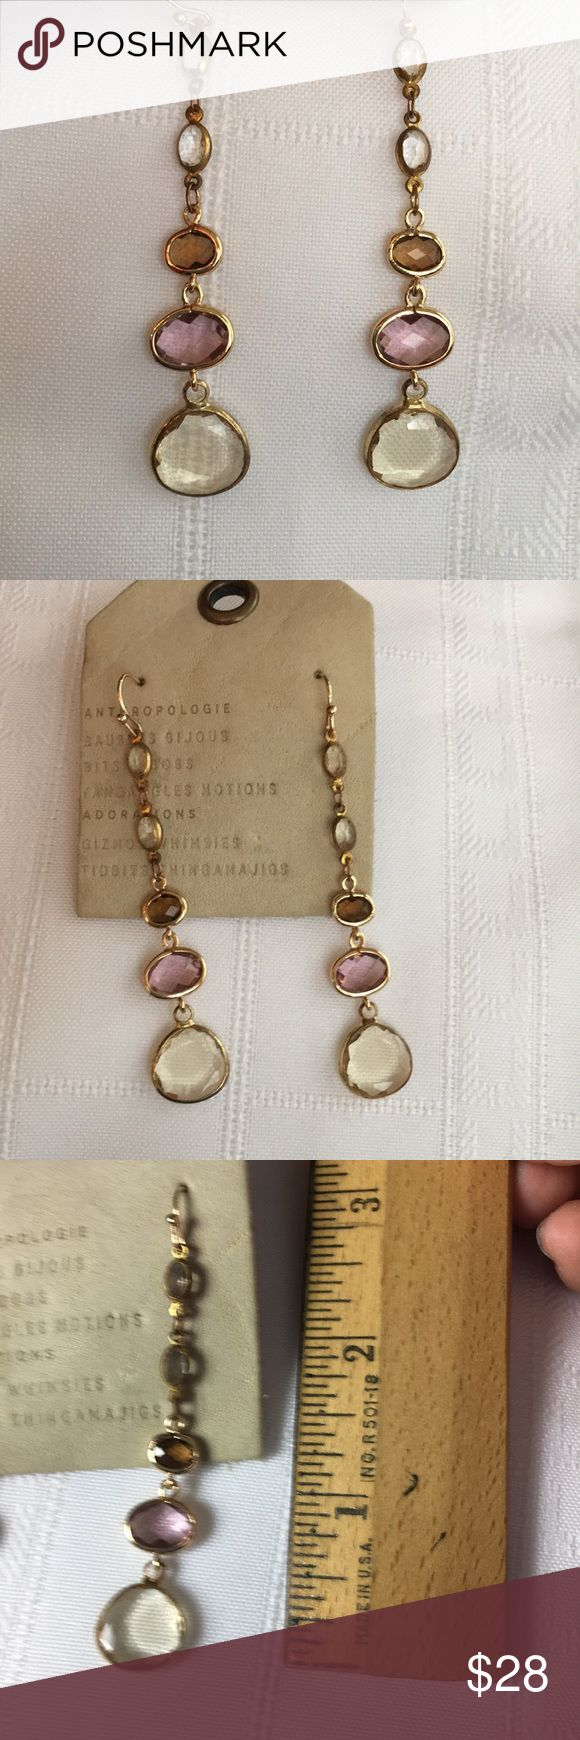 Anthropologie Golden Faceted Crystal Earrings Store overstock; New with tags; Graduated faceted crystal earrings Anthropologie Jewelry Earrings